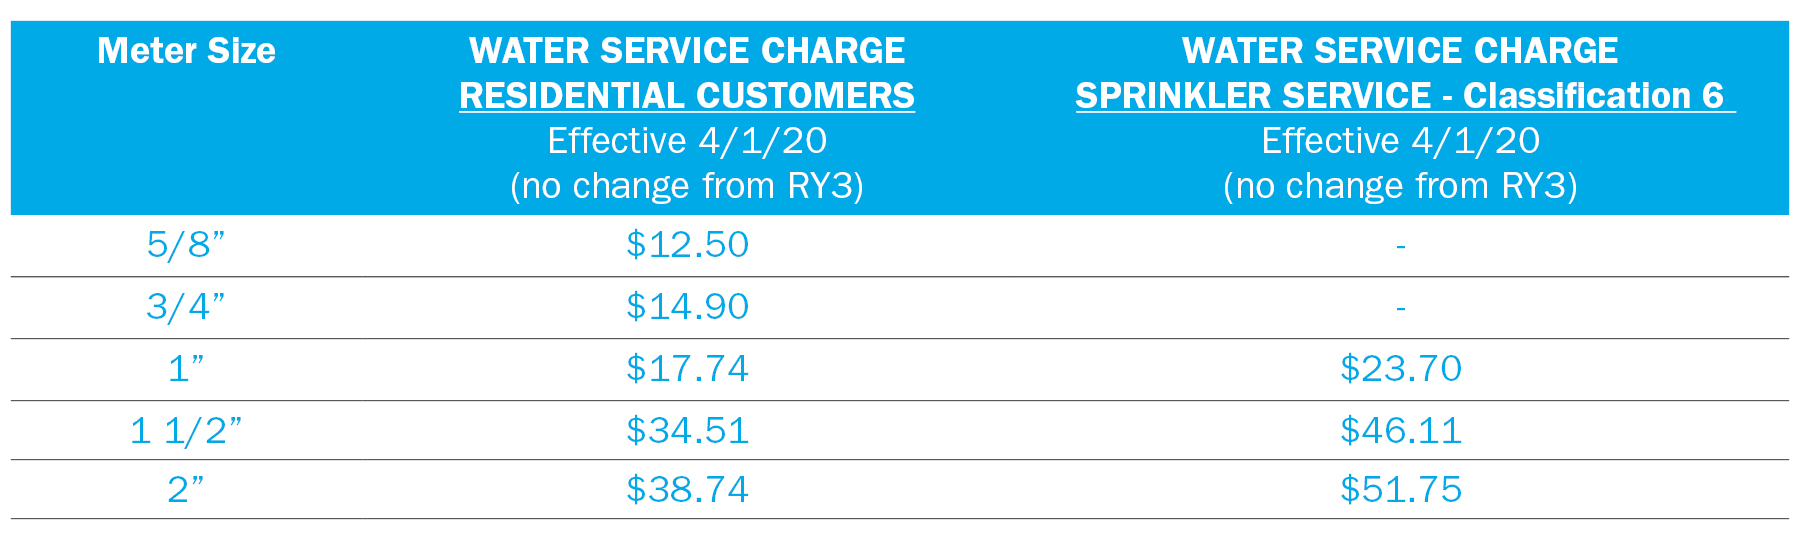 Rate Charts for Web - Service Charge637185218554587700